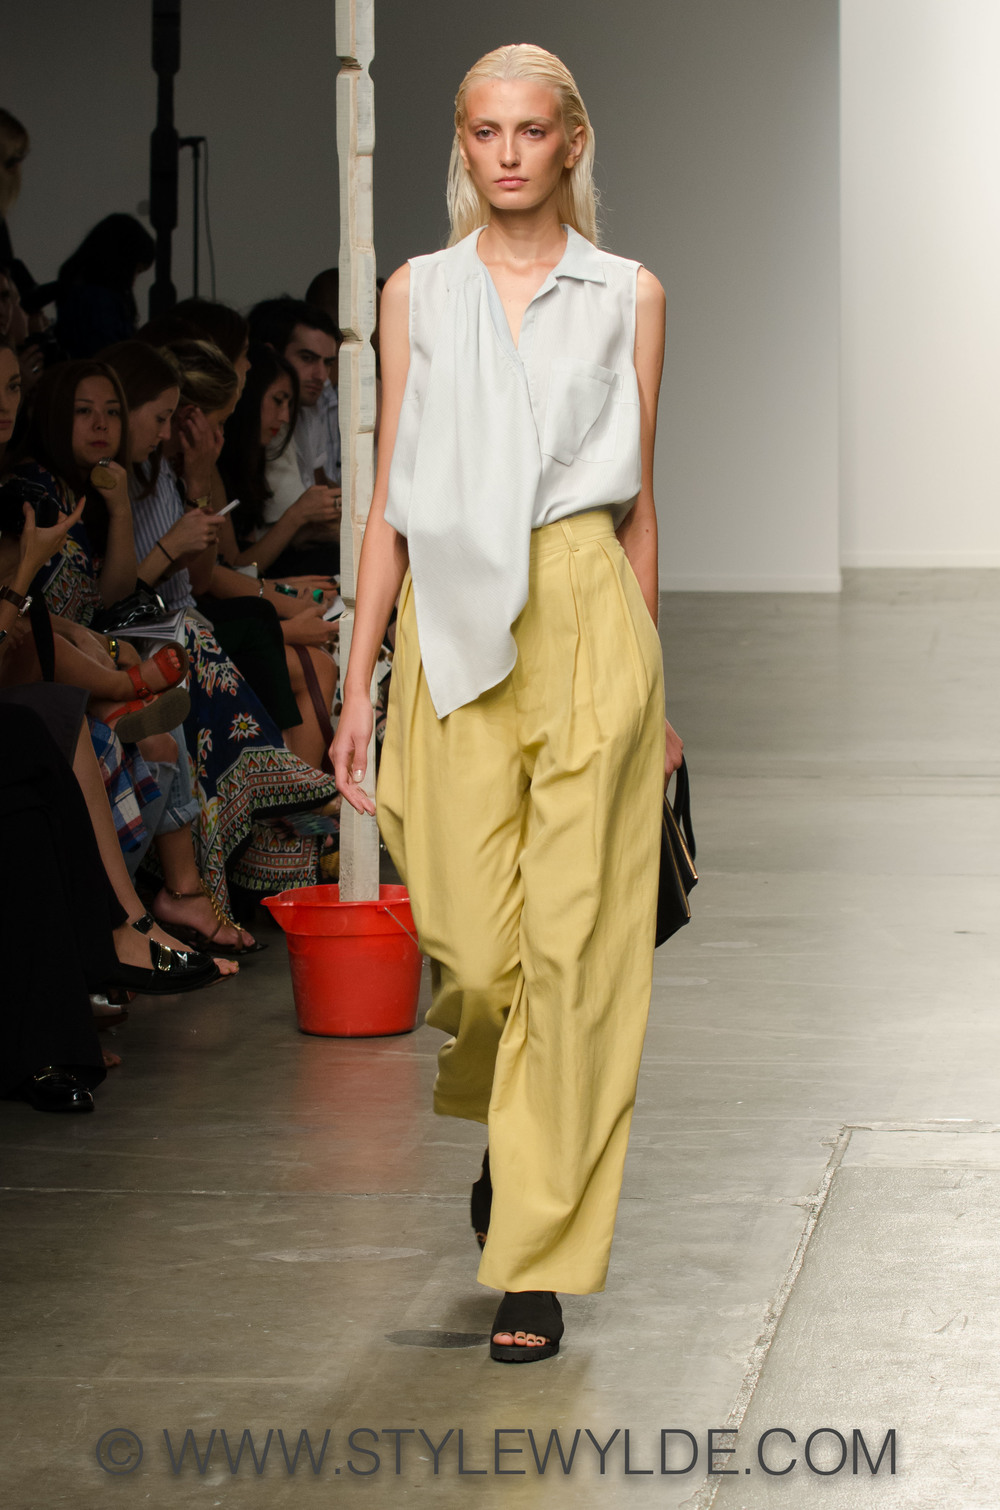 StyleWylde_Creatures_FOH_SS15 (20 of 49).jpg